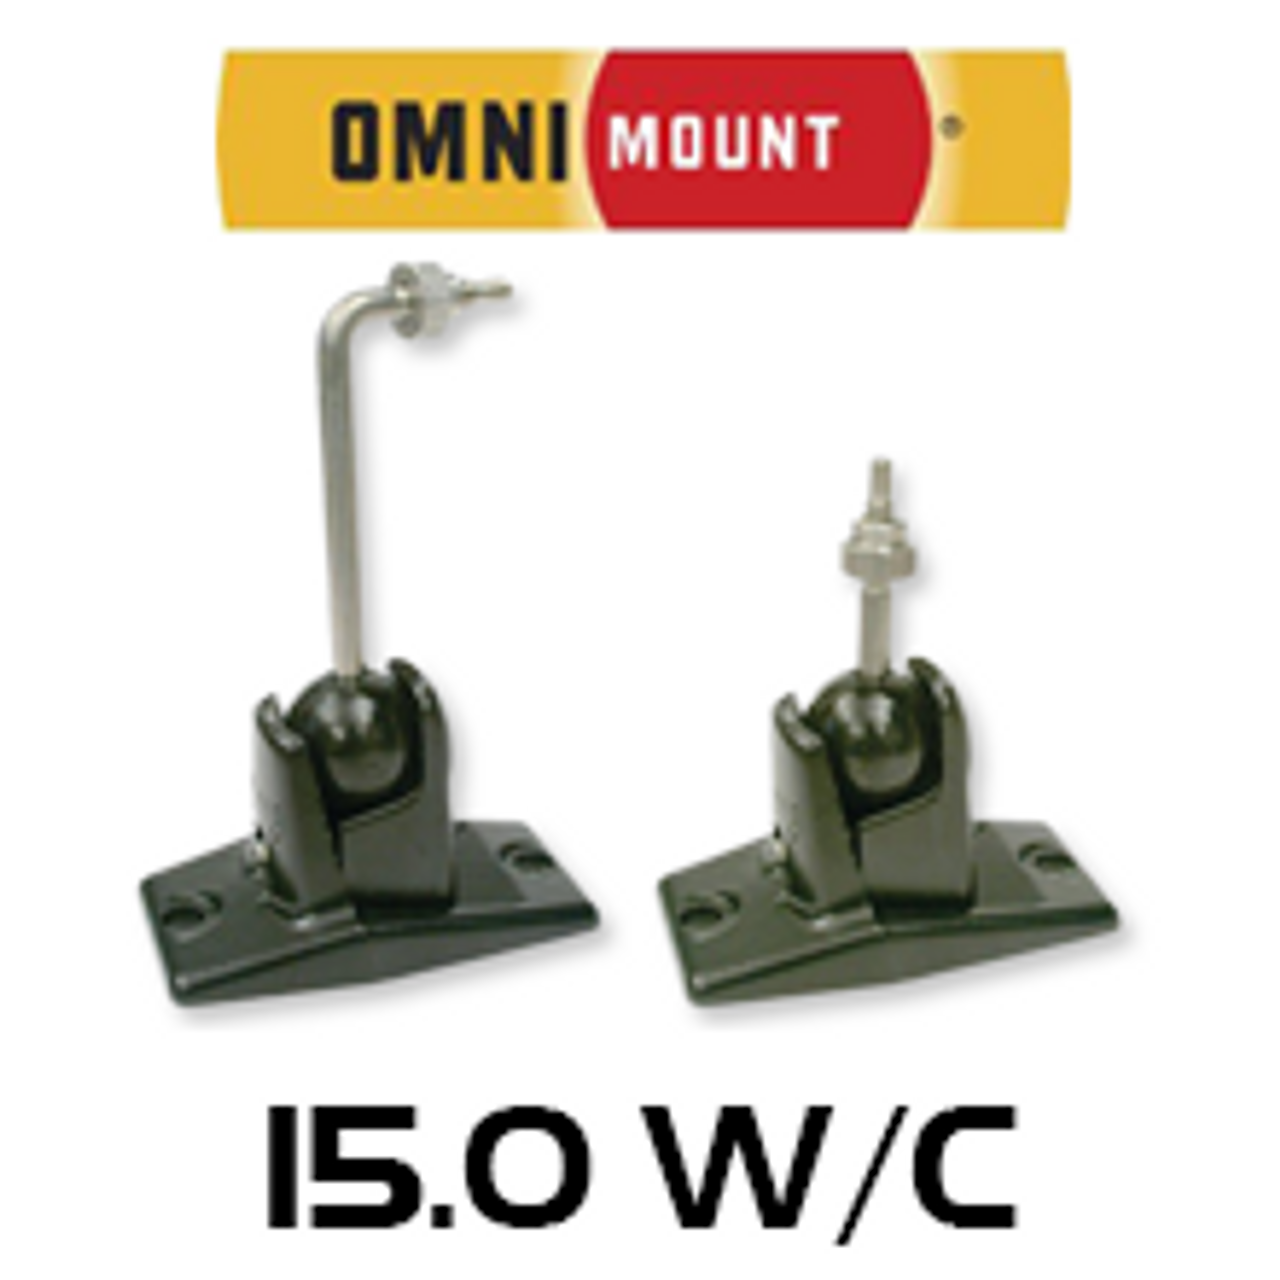 OmniMount 150 W C Bookshelf Speaker Mount Bracket Each